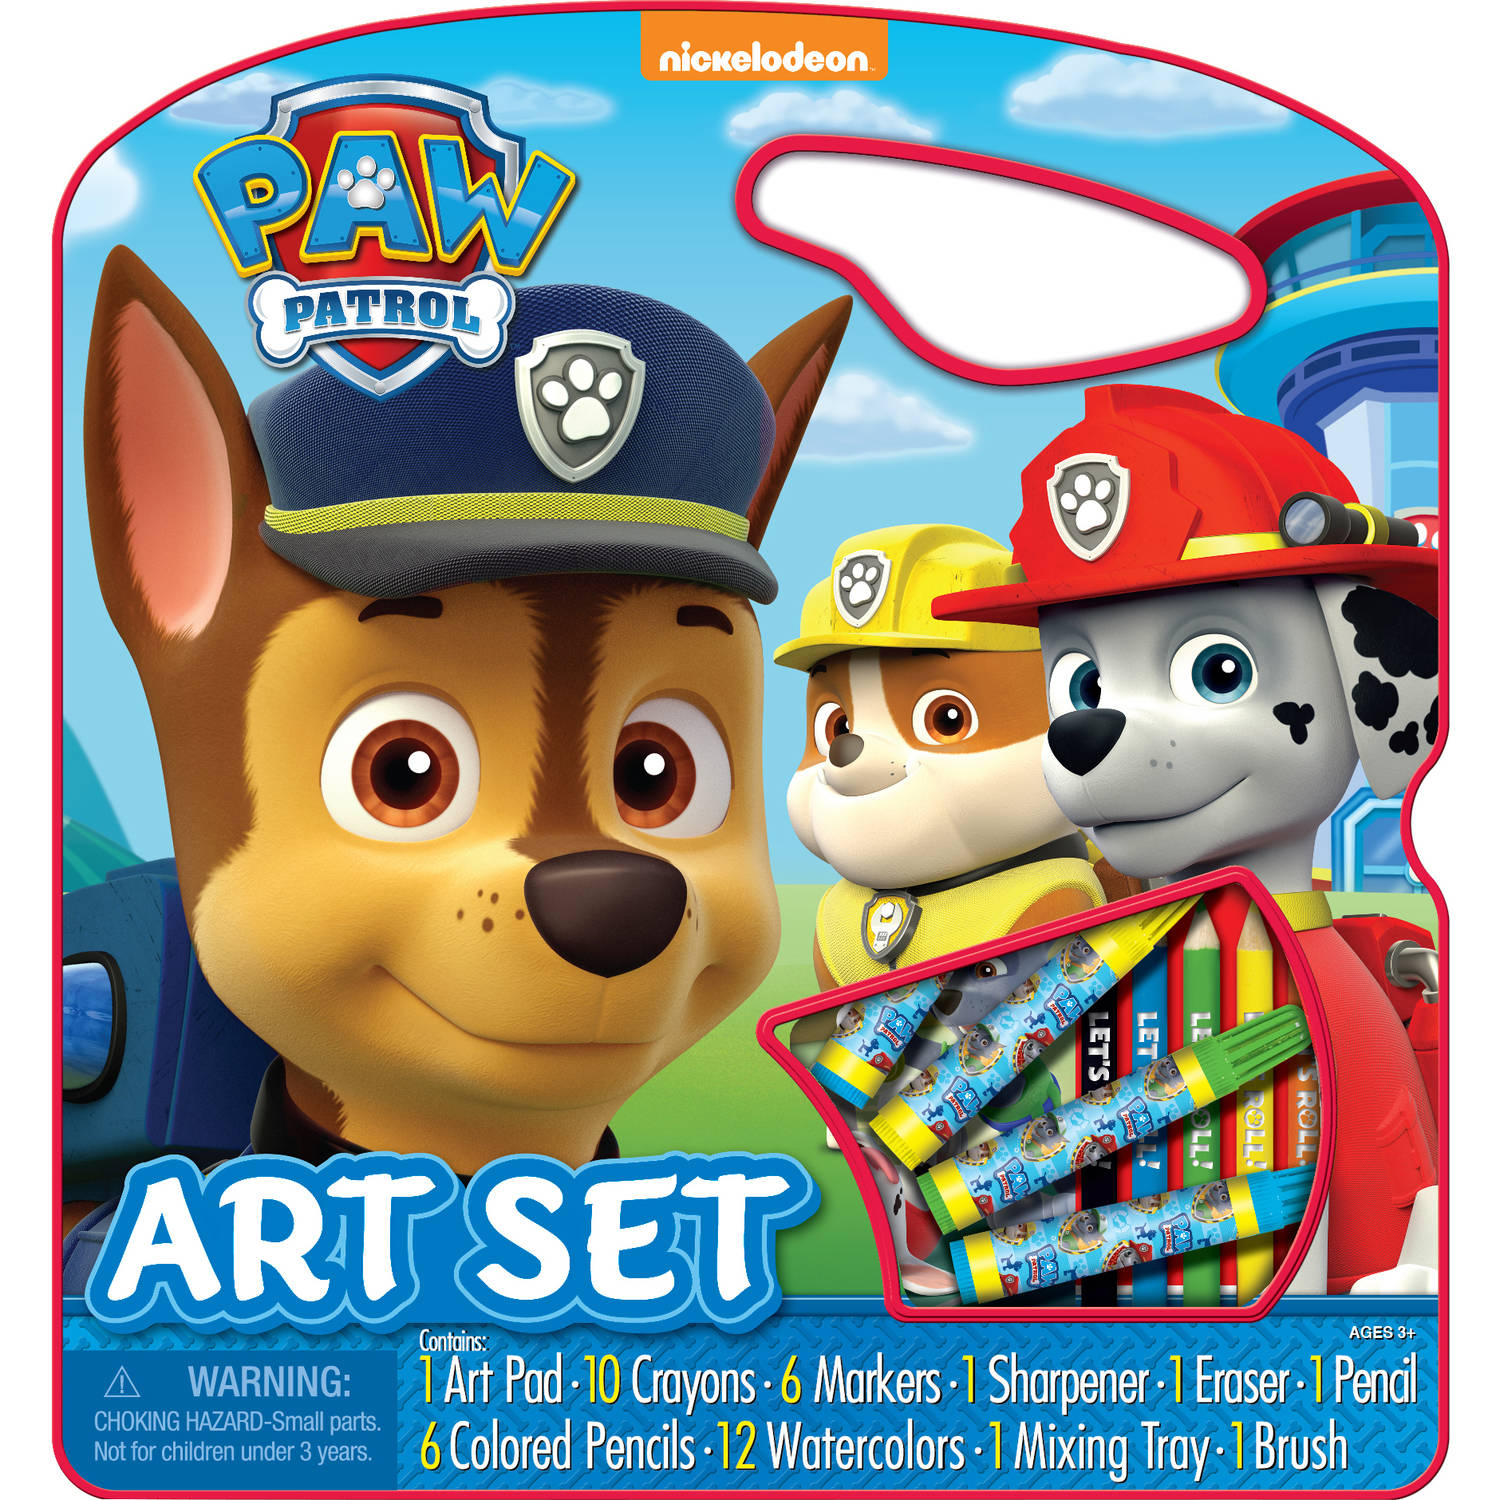 Nickelodeon Paw Patrol Character Art Set by Brendon Inc.